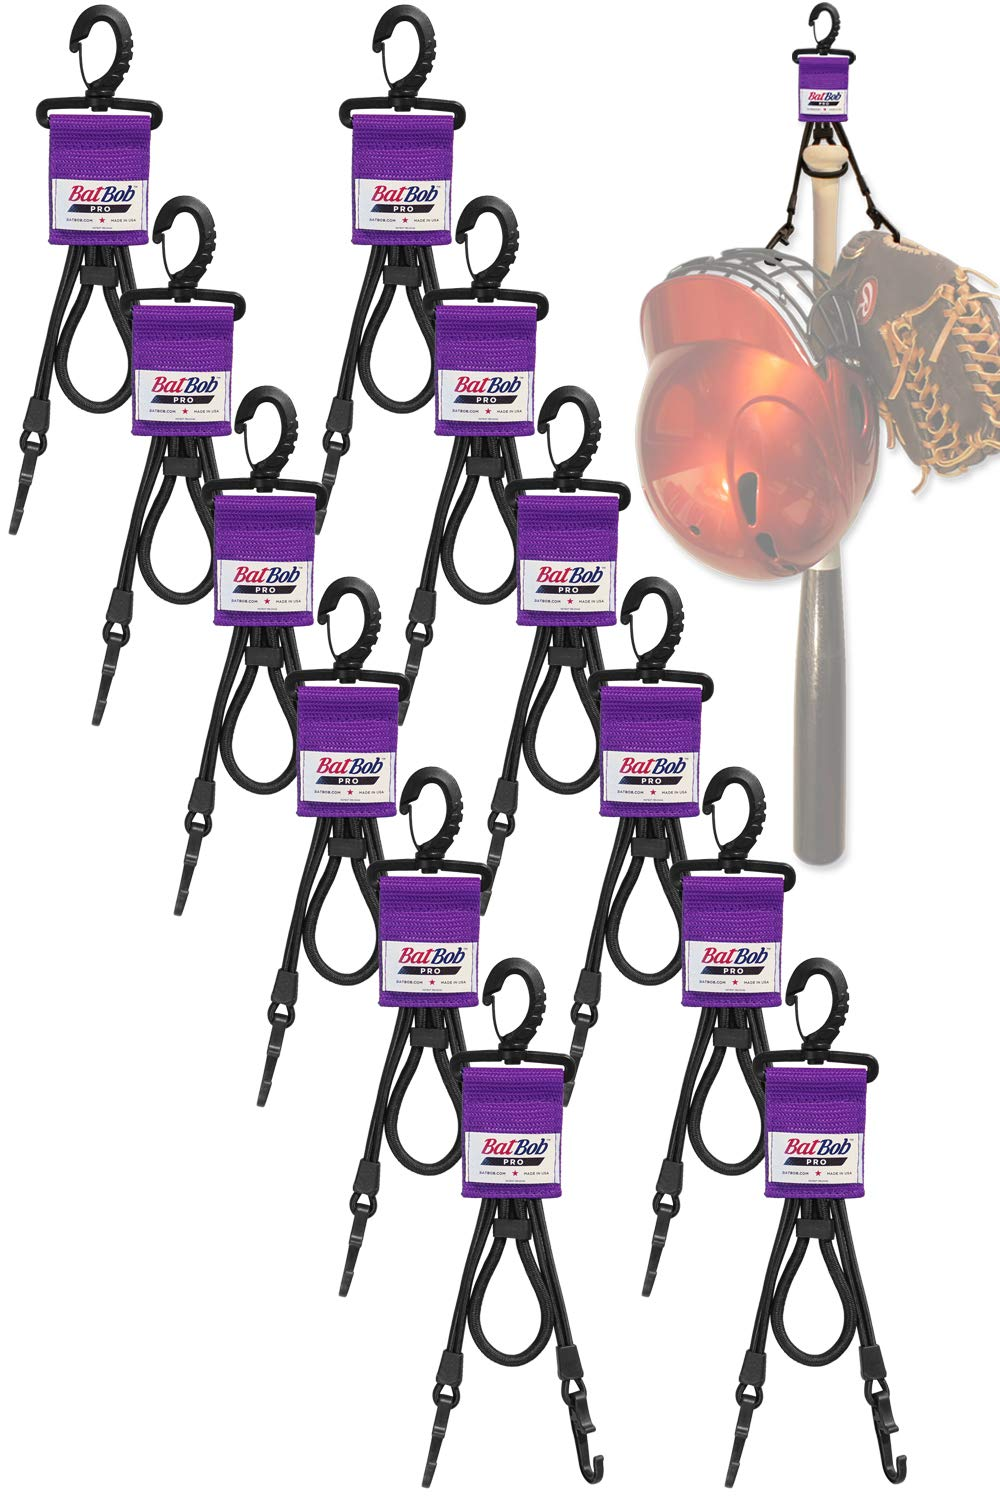 (Team 12 pack) Dugout Gear Hanger - The Dugout Organizer - For Baseball and Softball to hold bats, helmets and gloves (Purple) by BatBob